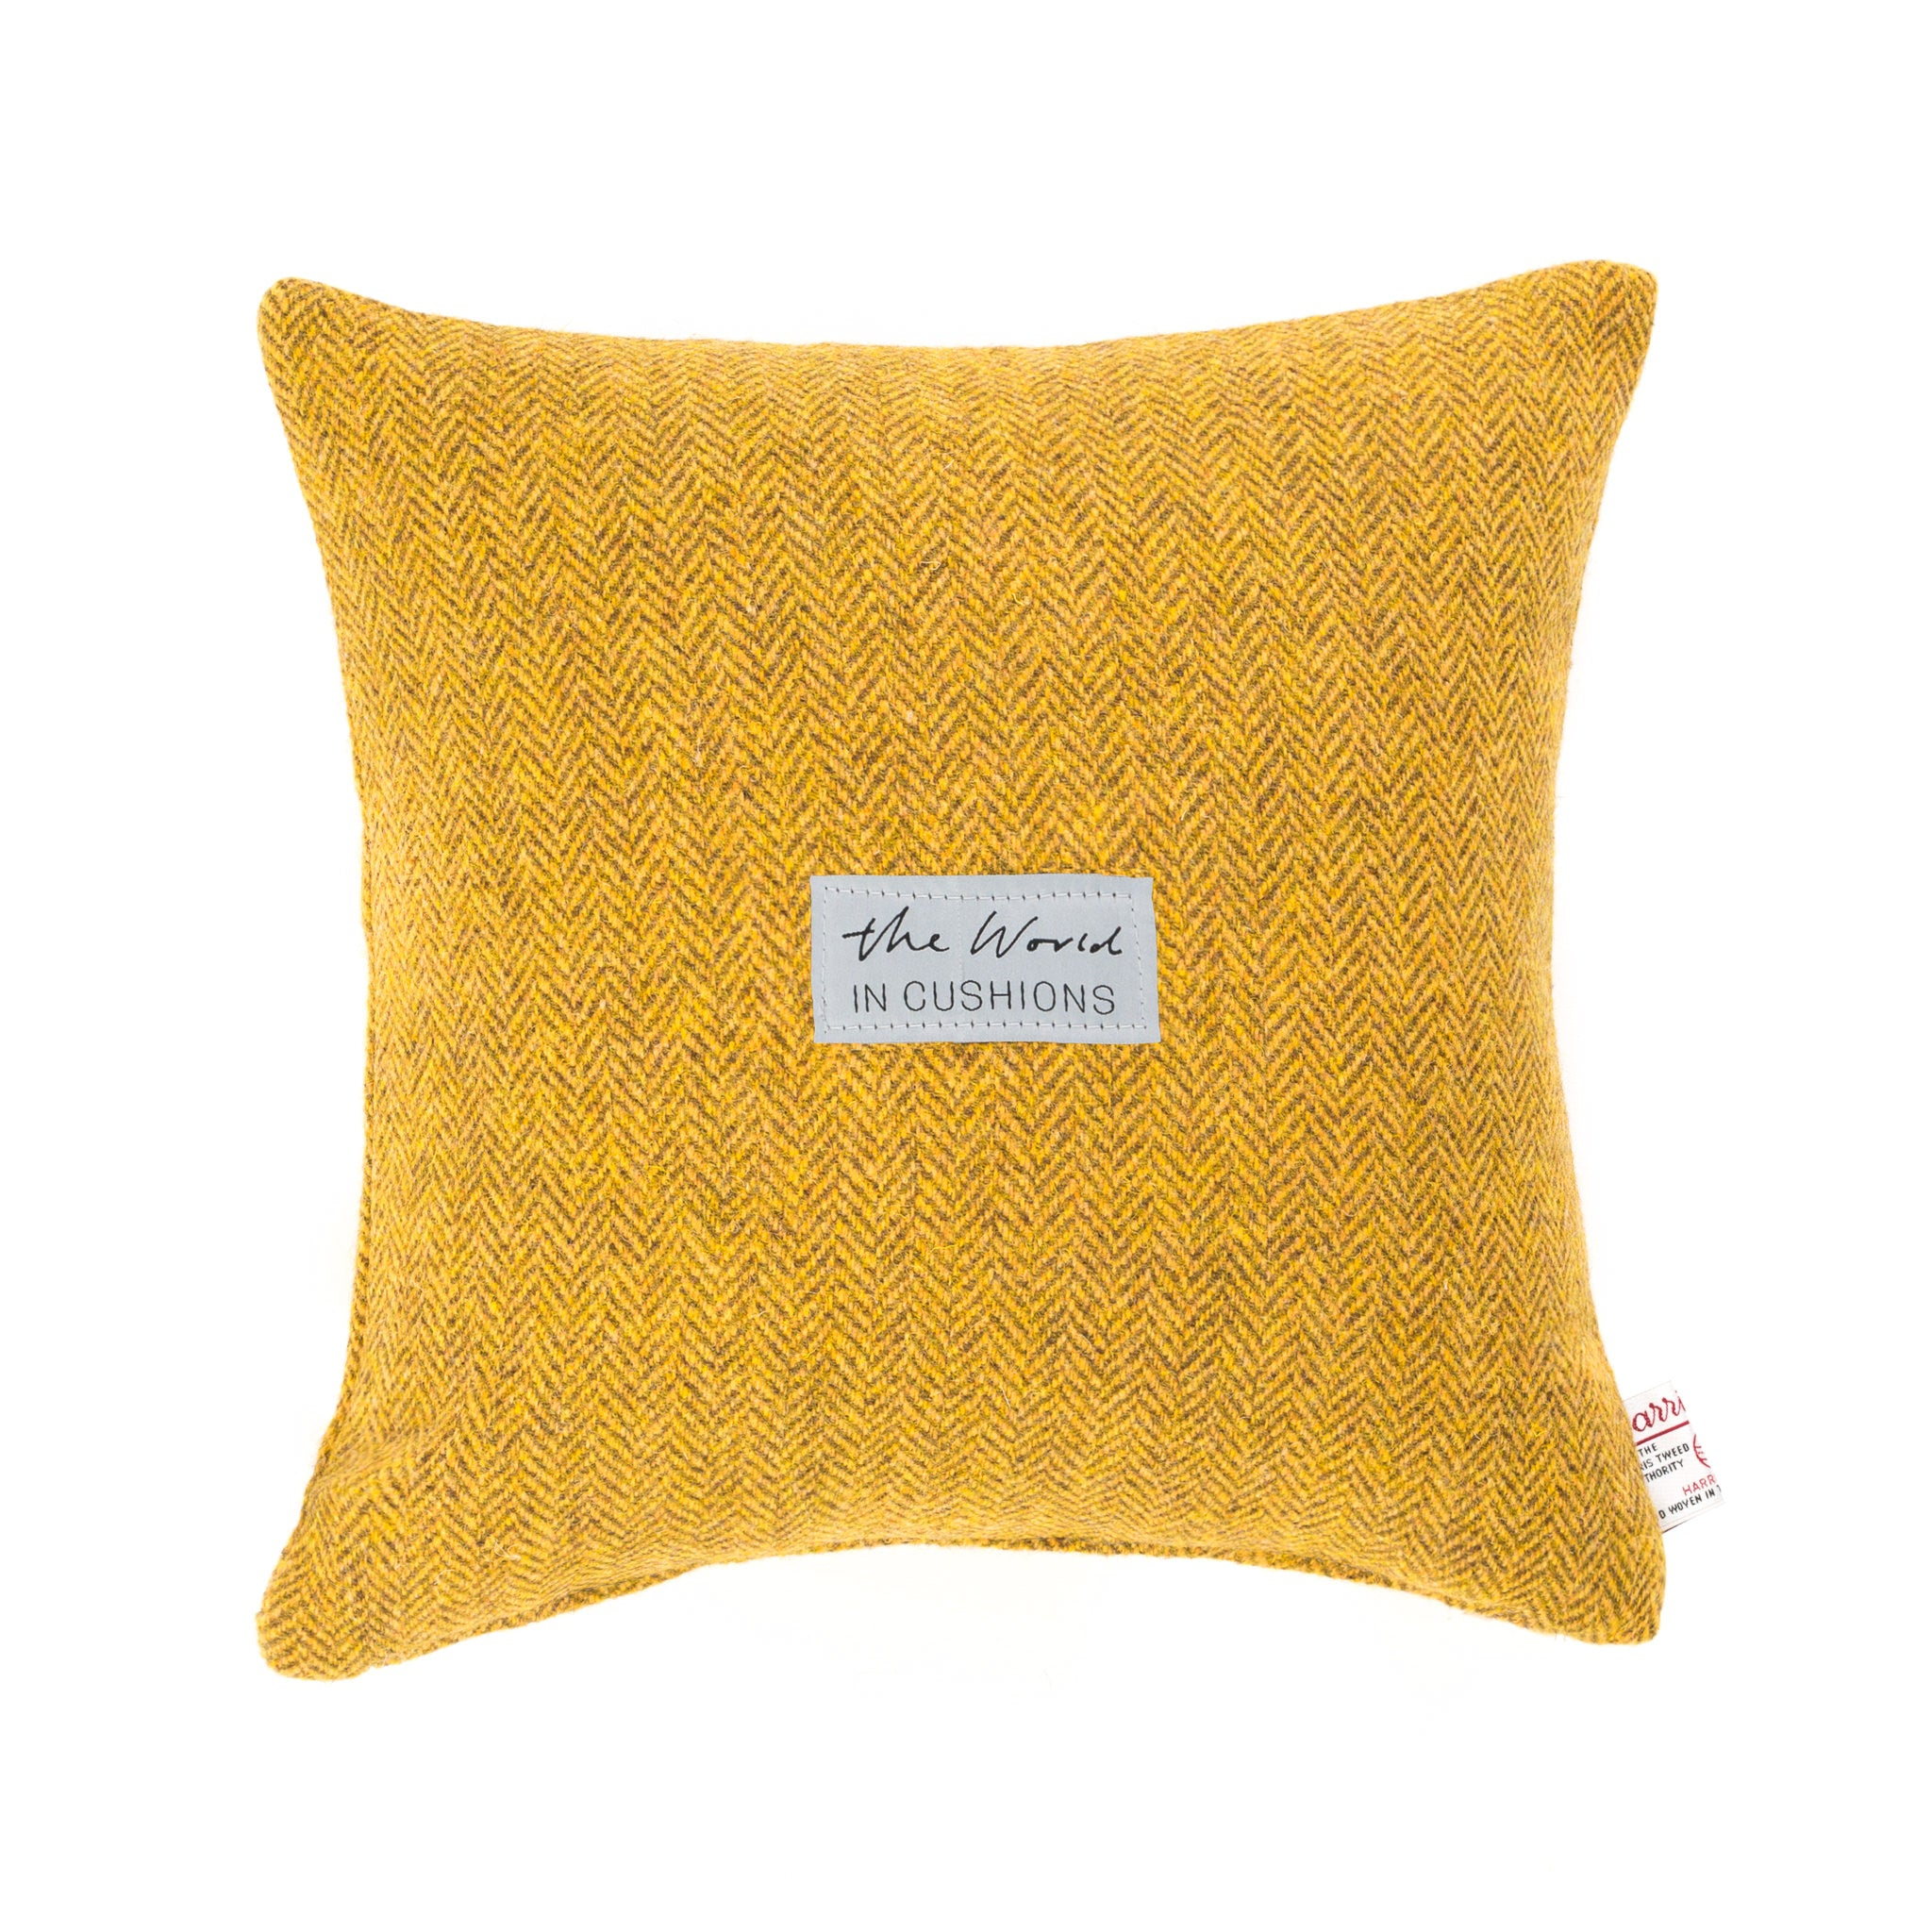 Harris Tweed/Pure Wool/Yellow/Mustard/Gorse/Herringbone/Back/Outer Hebrides/Scatter/Cushion/